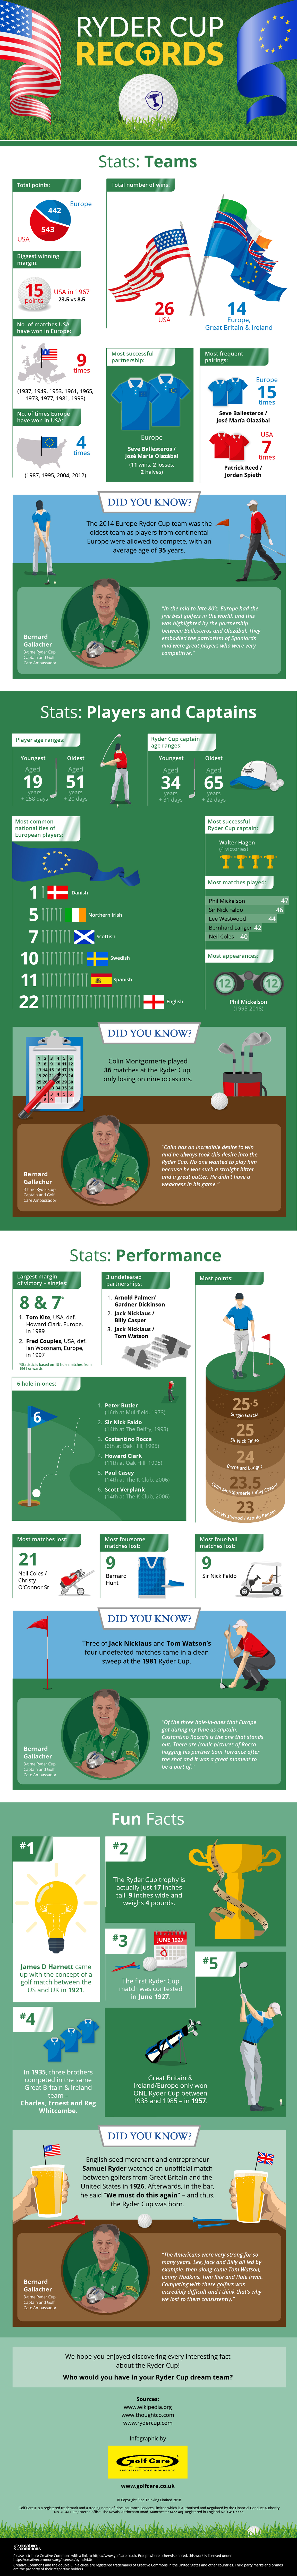 All-Time Ryder Cup Records